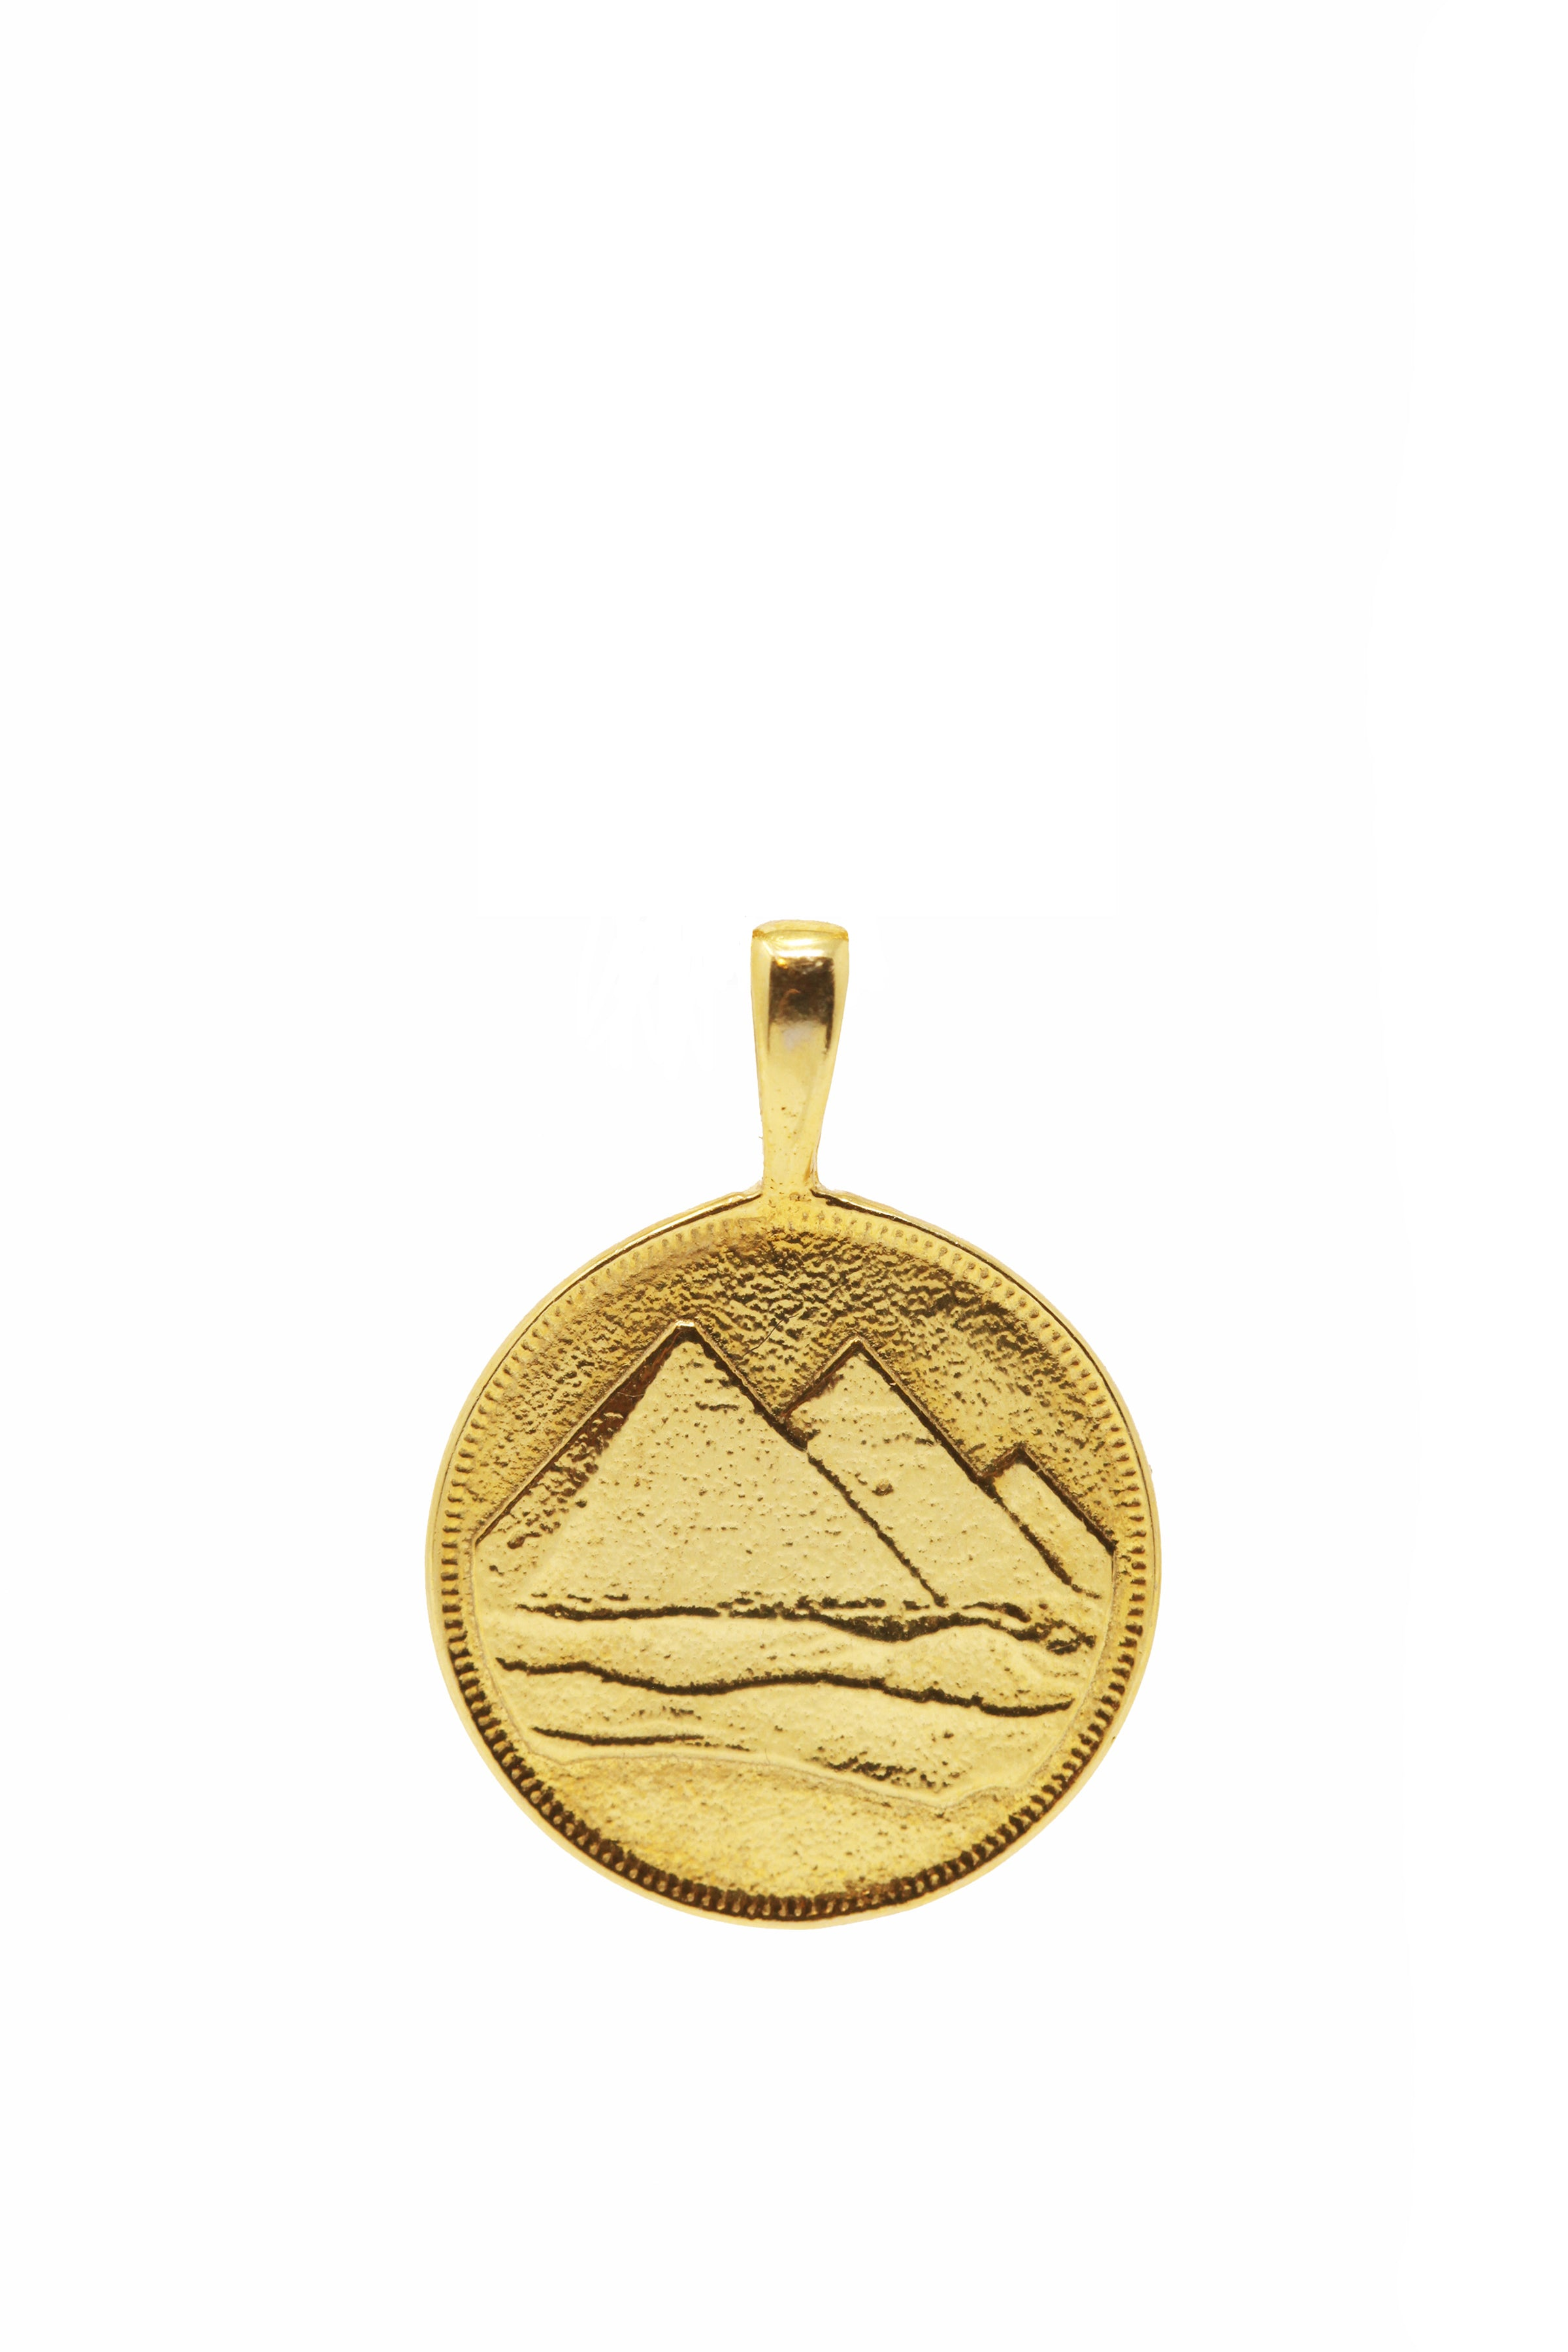 THE PYRAMID Coin Pendant